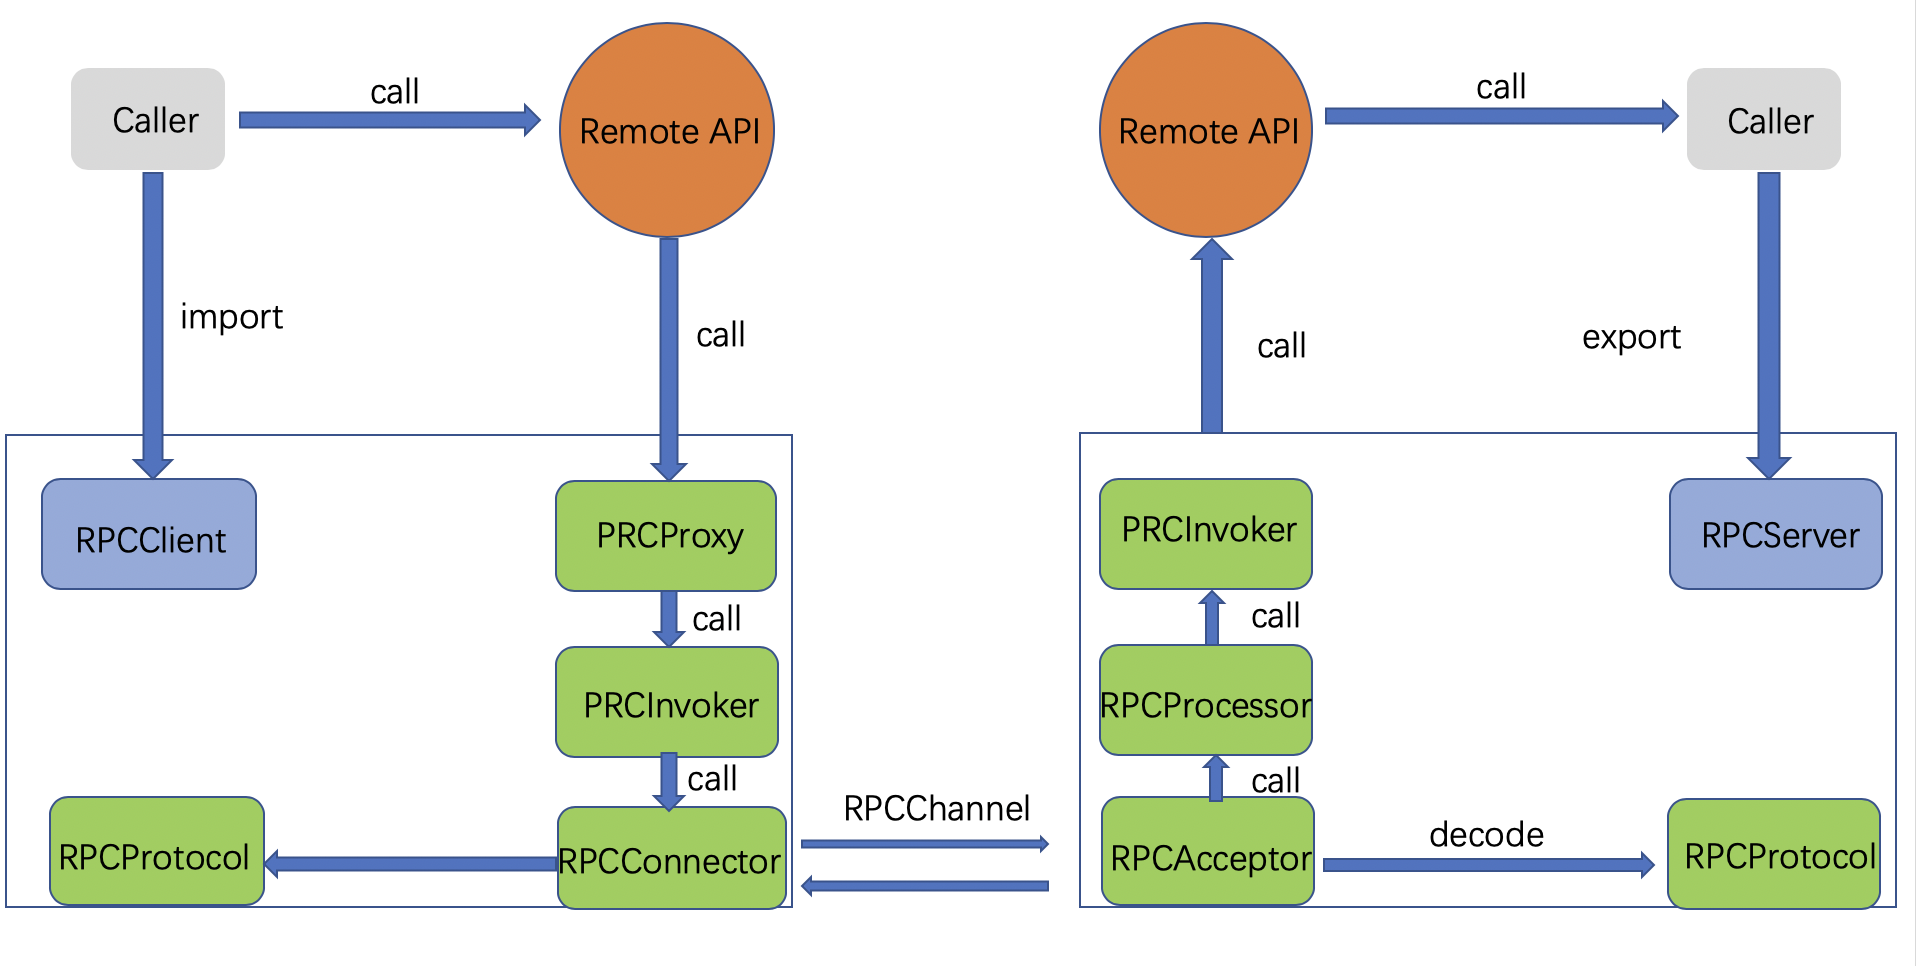 rpc-structure-2_1579154462930